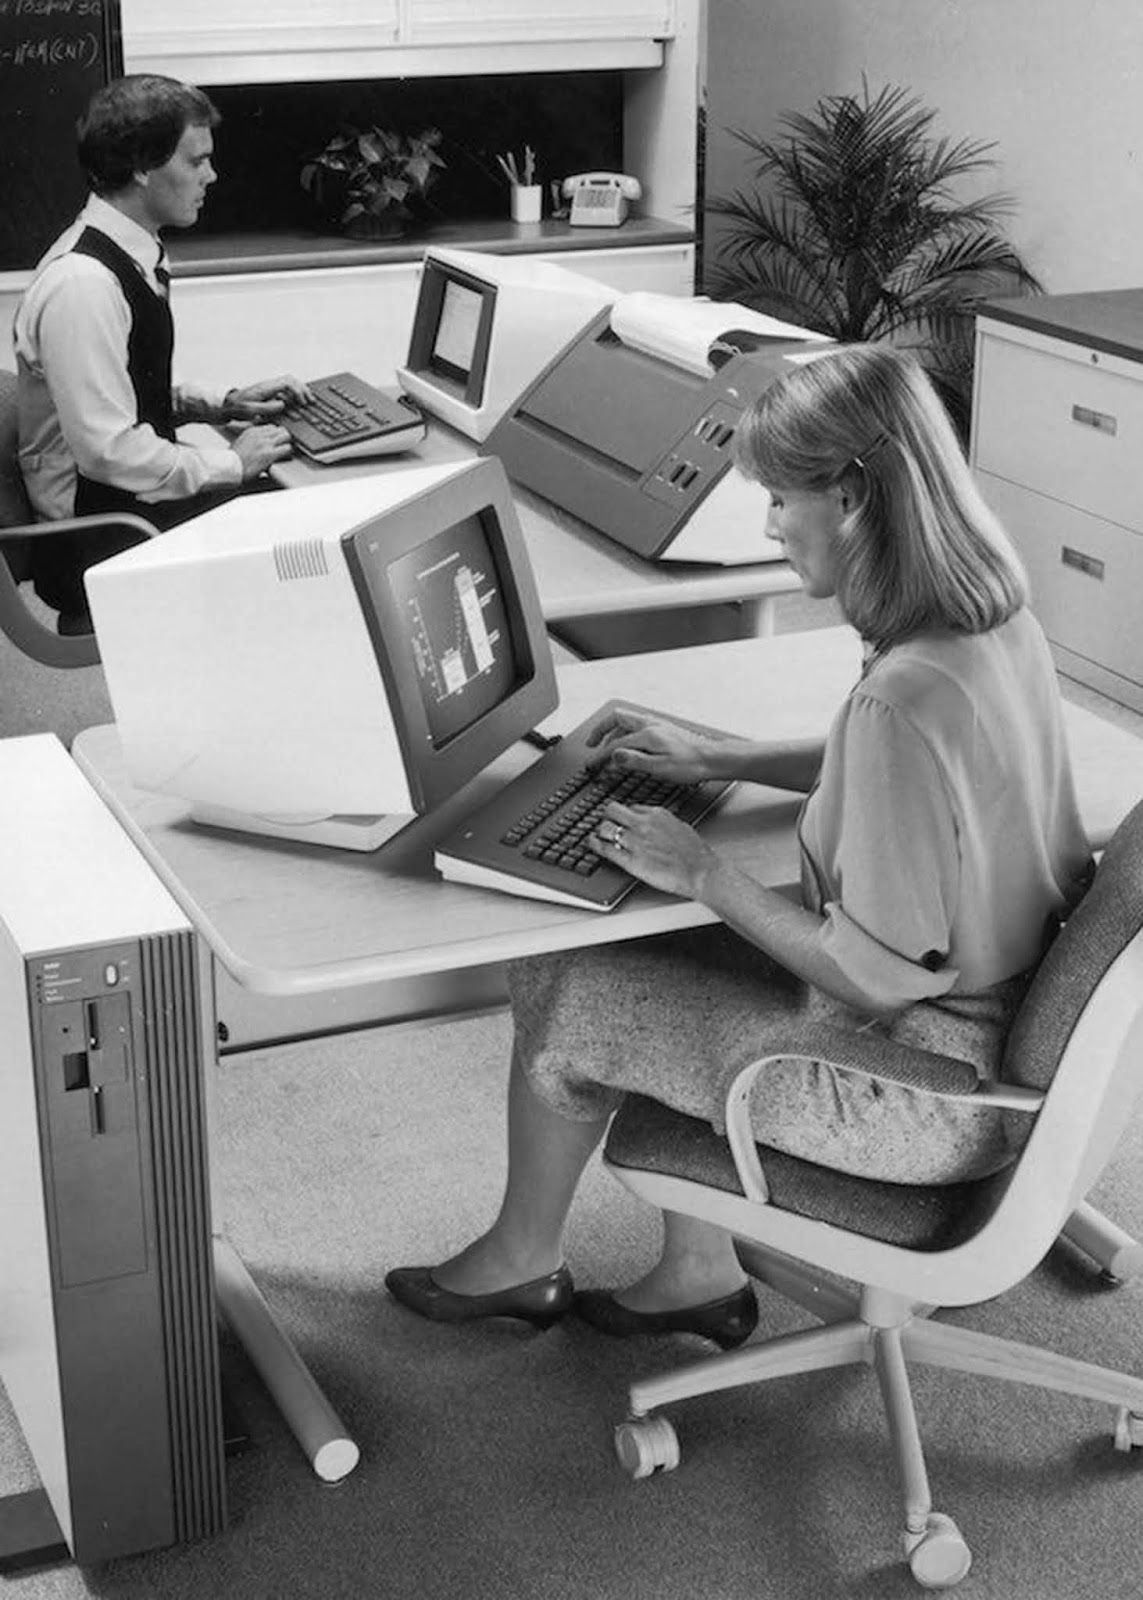 A woman uses a personal computer at the NCR research and development facility in West Columbia, South Carolina. She wears a blouse with rolled sleeves and a formal knee- or calf-length tweed skirt, with court shoes. Her hair is shoulder-length, held away from her face by a slide. 1982.